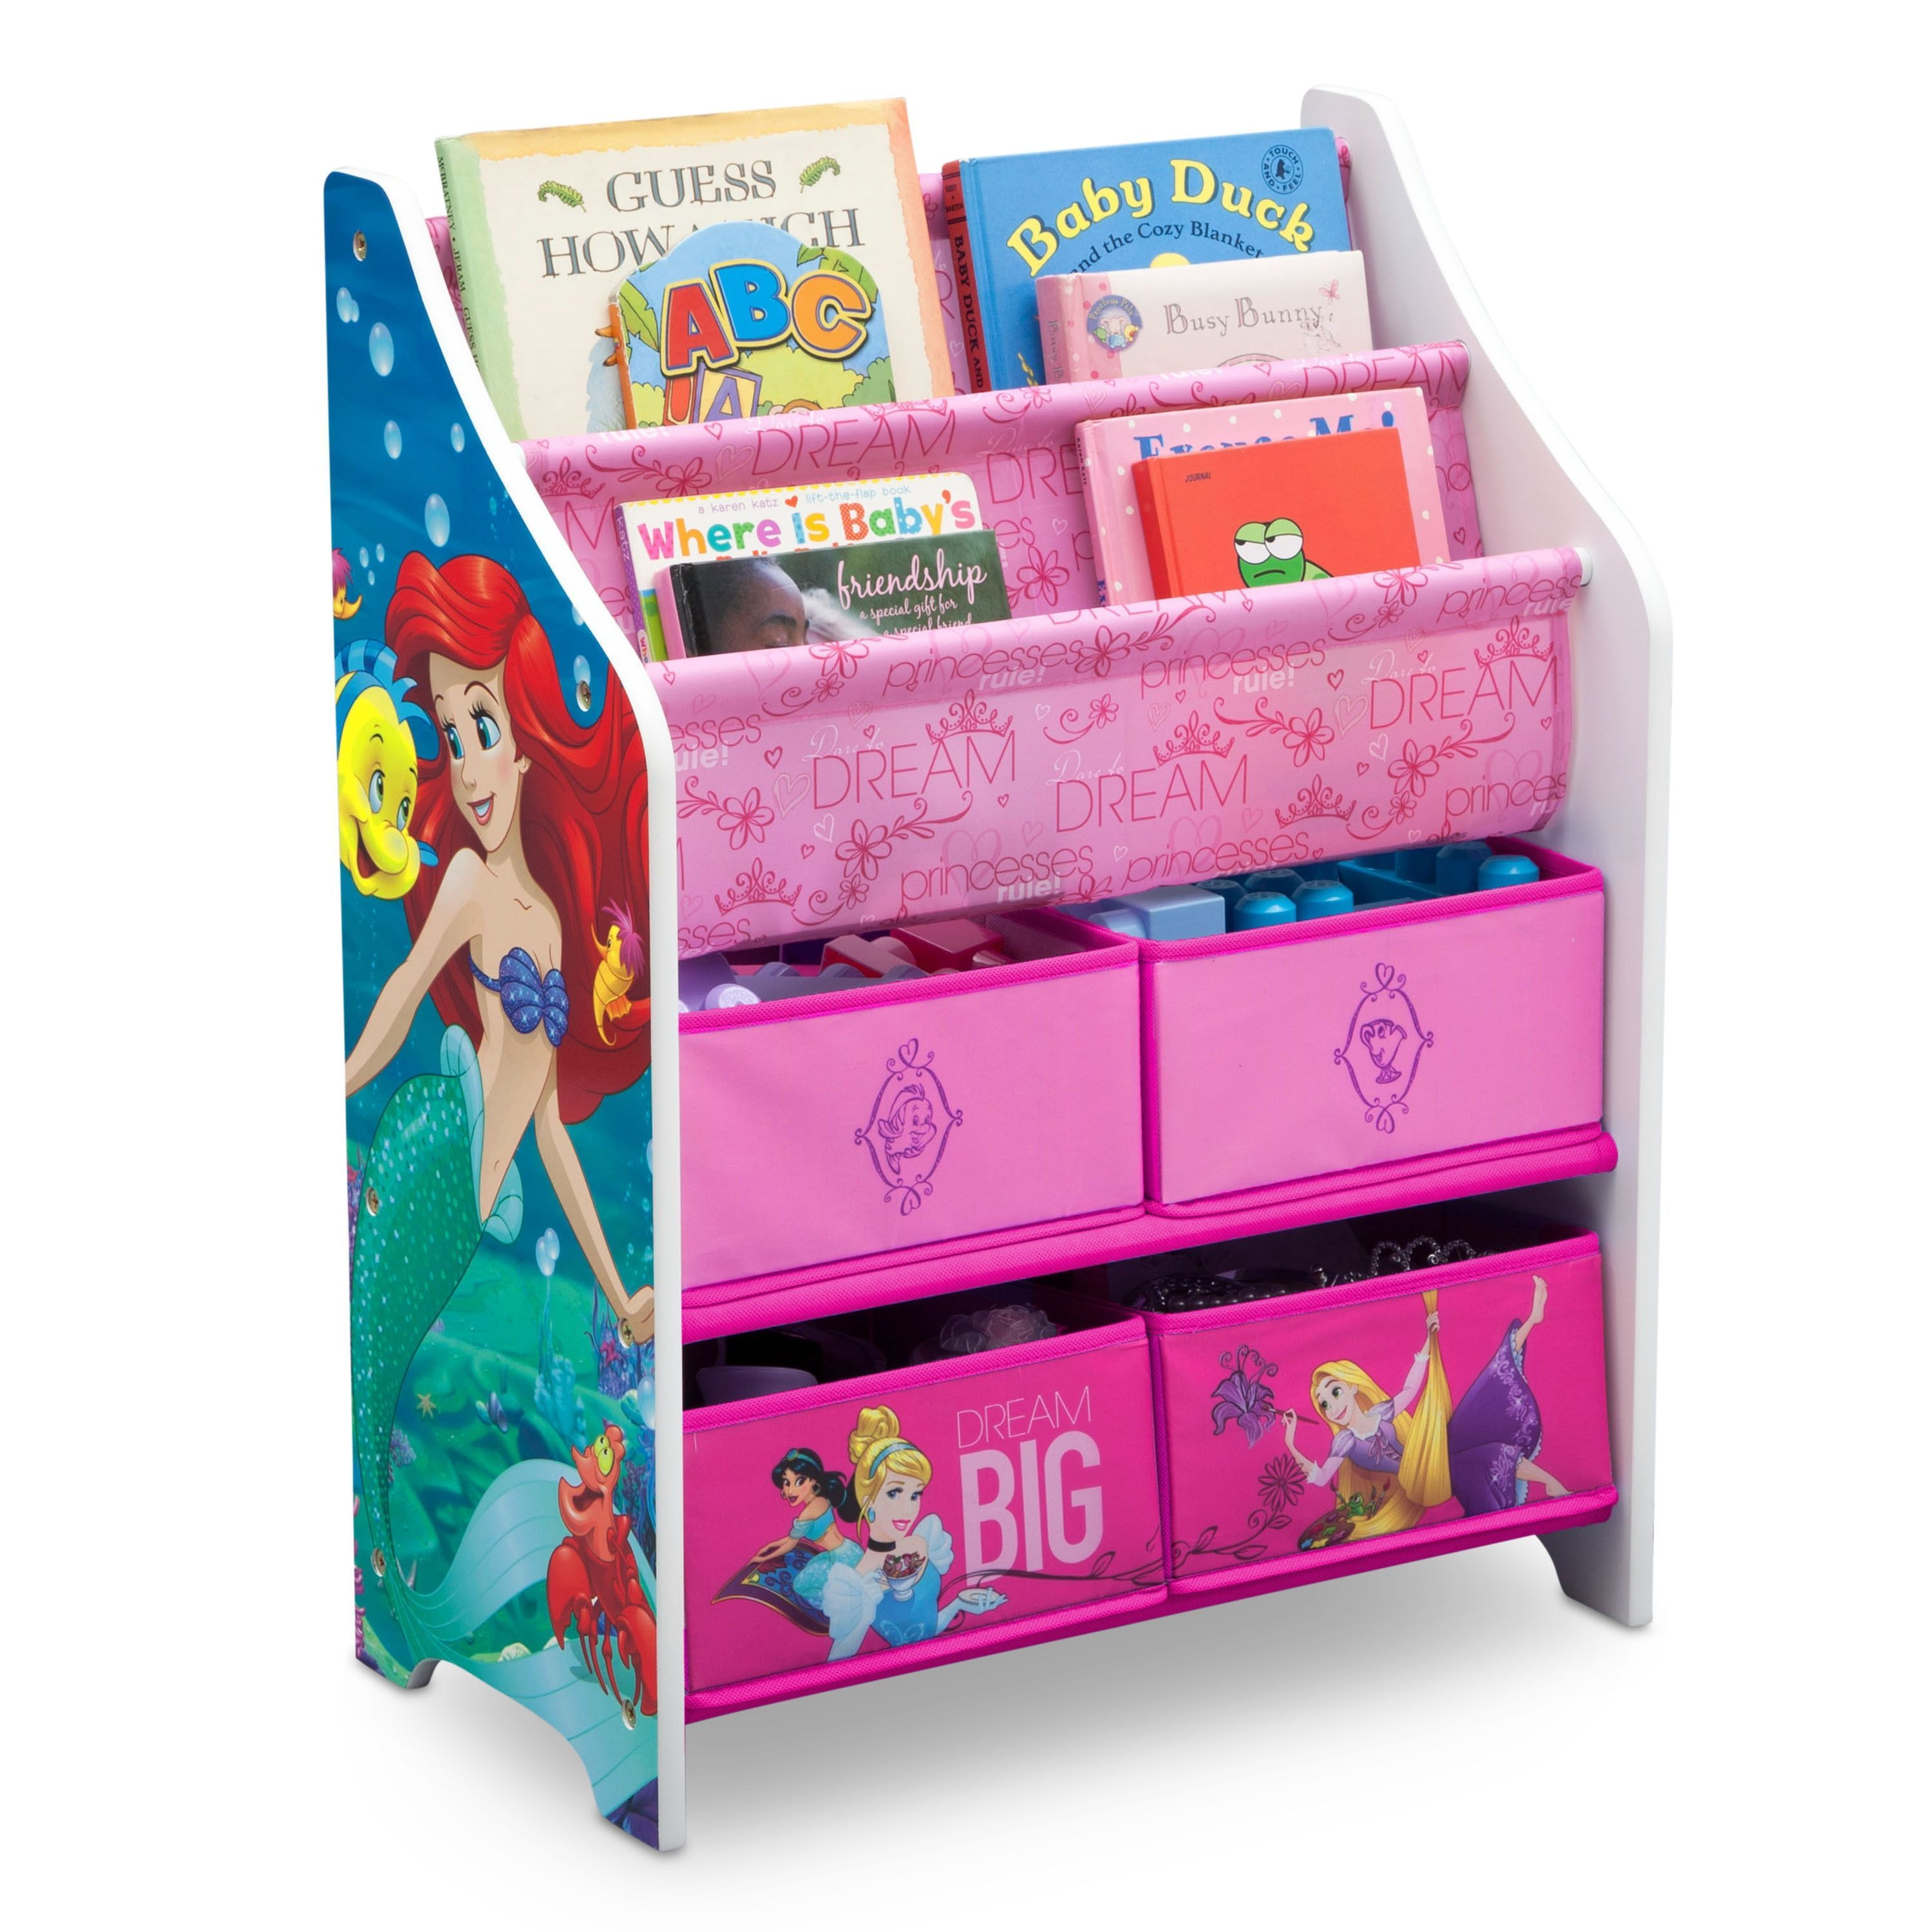 Disney Princess Book And Toy Organizer Toy Organization Disney Princess Toys Princess Toys